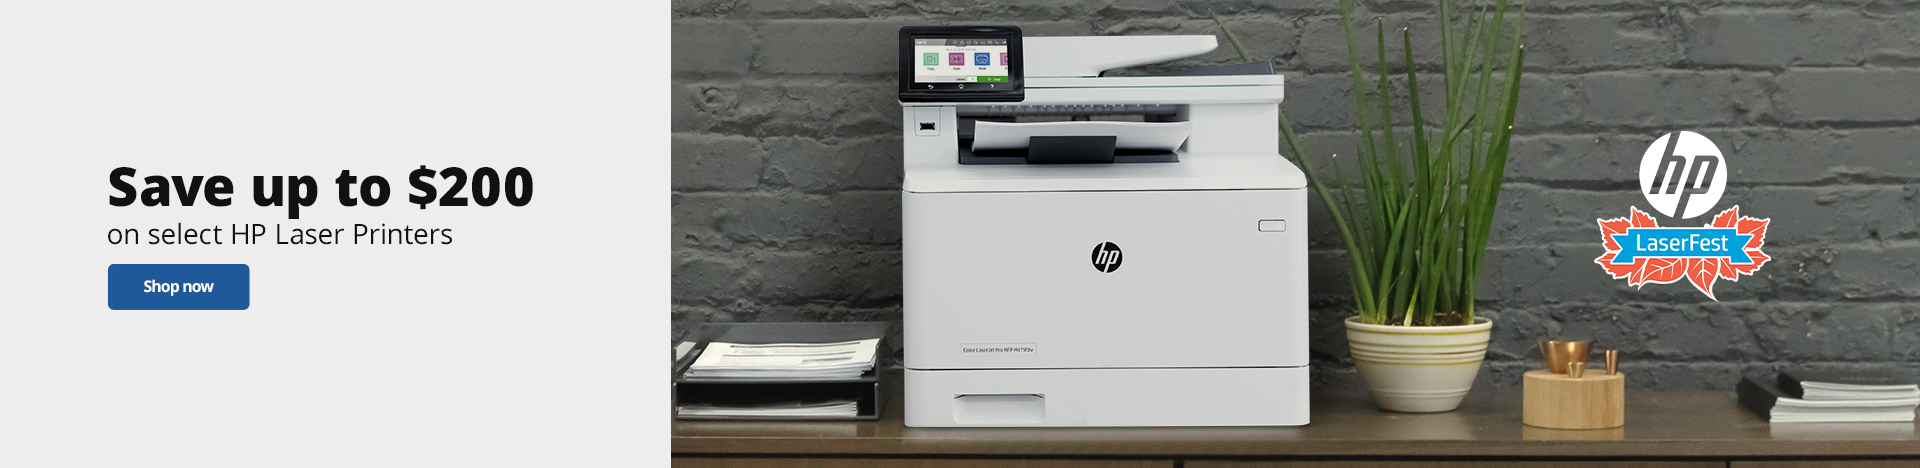 HP Laserfest- Save up to $200 on select HP Printers